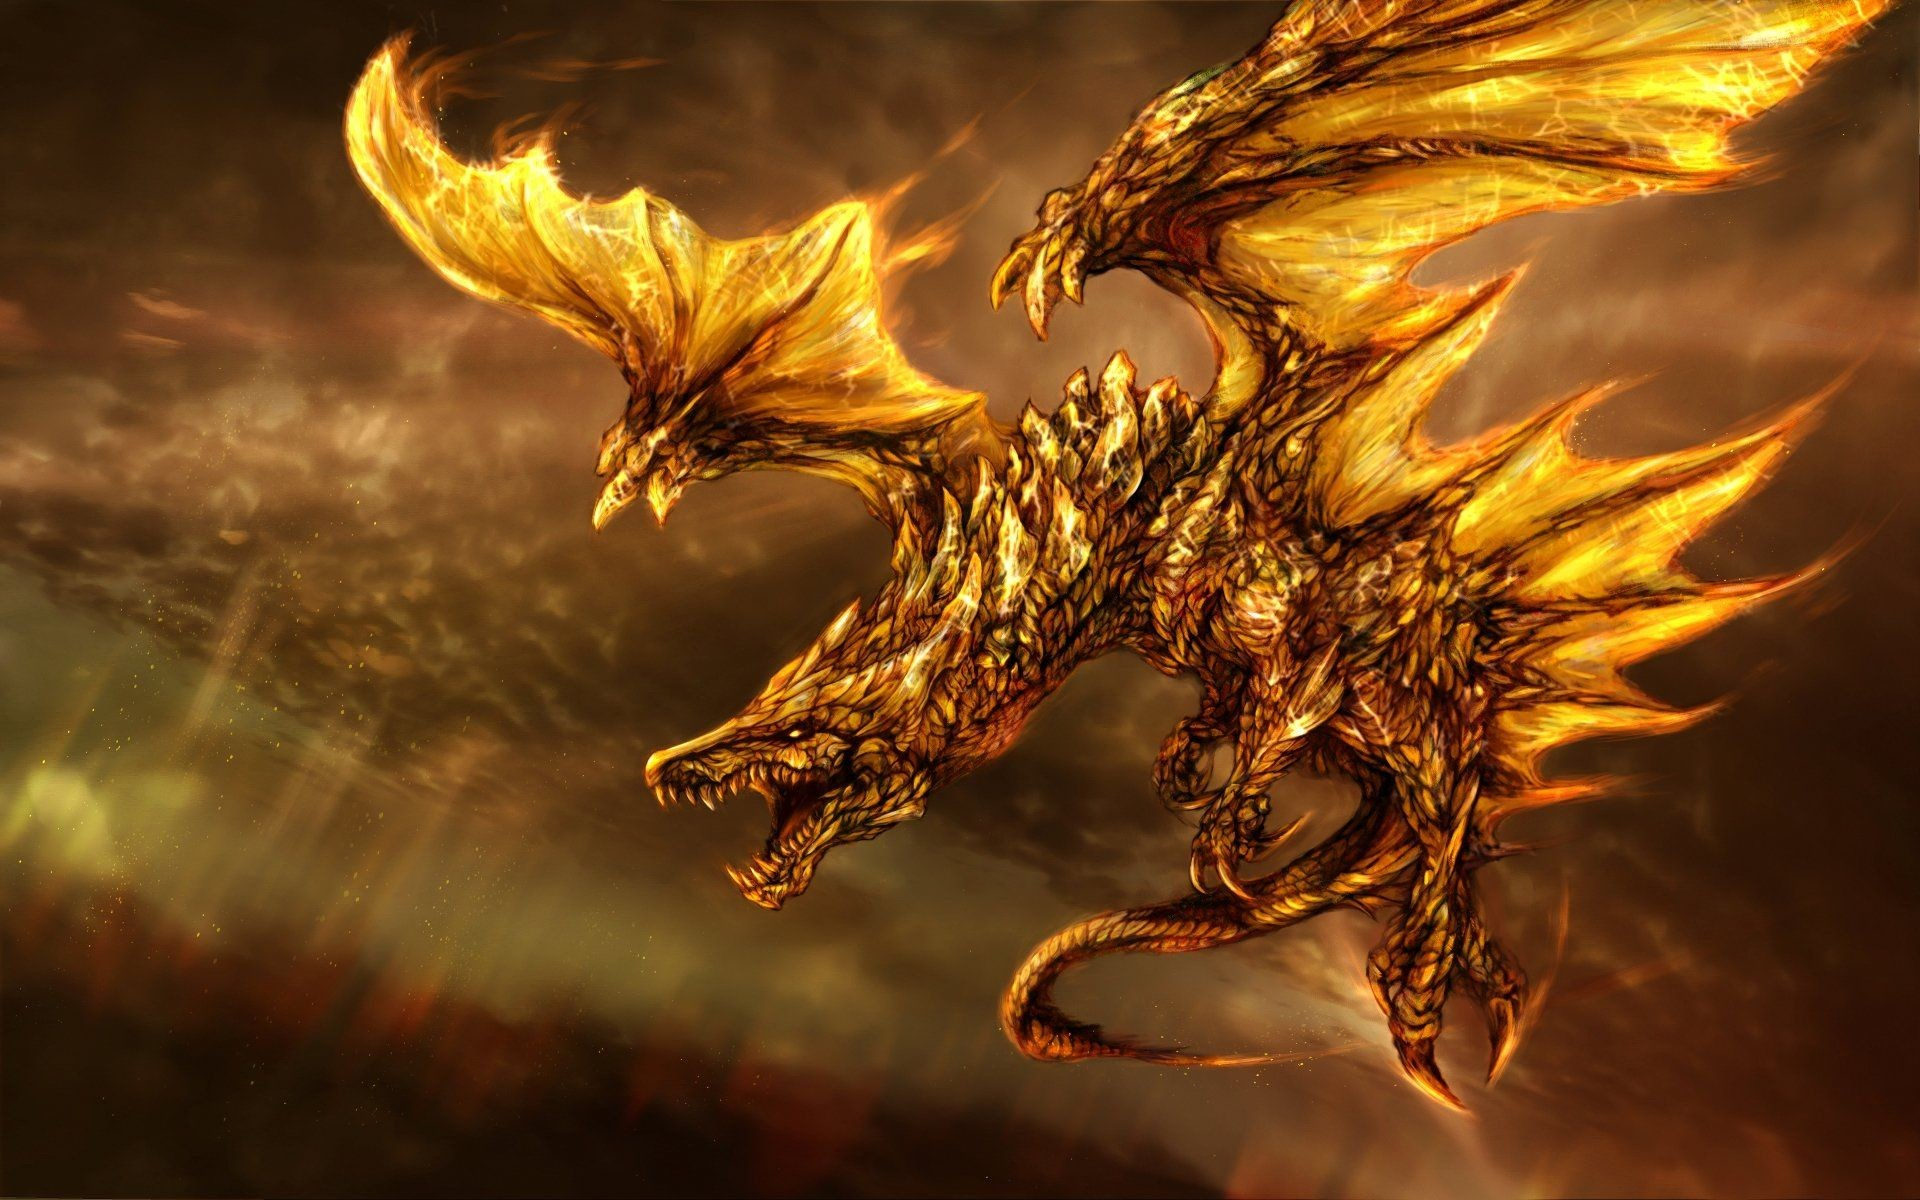 1920x1200 Free Dragon Screensavers And Wallpapers - Wallpaper Cave